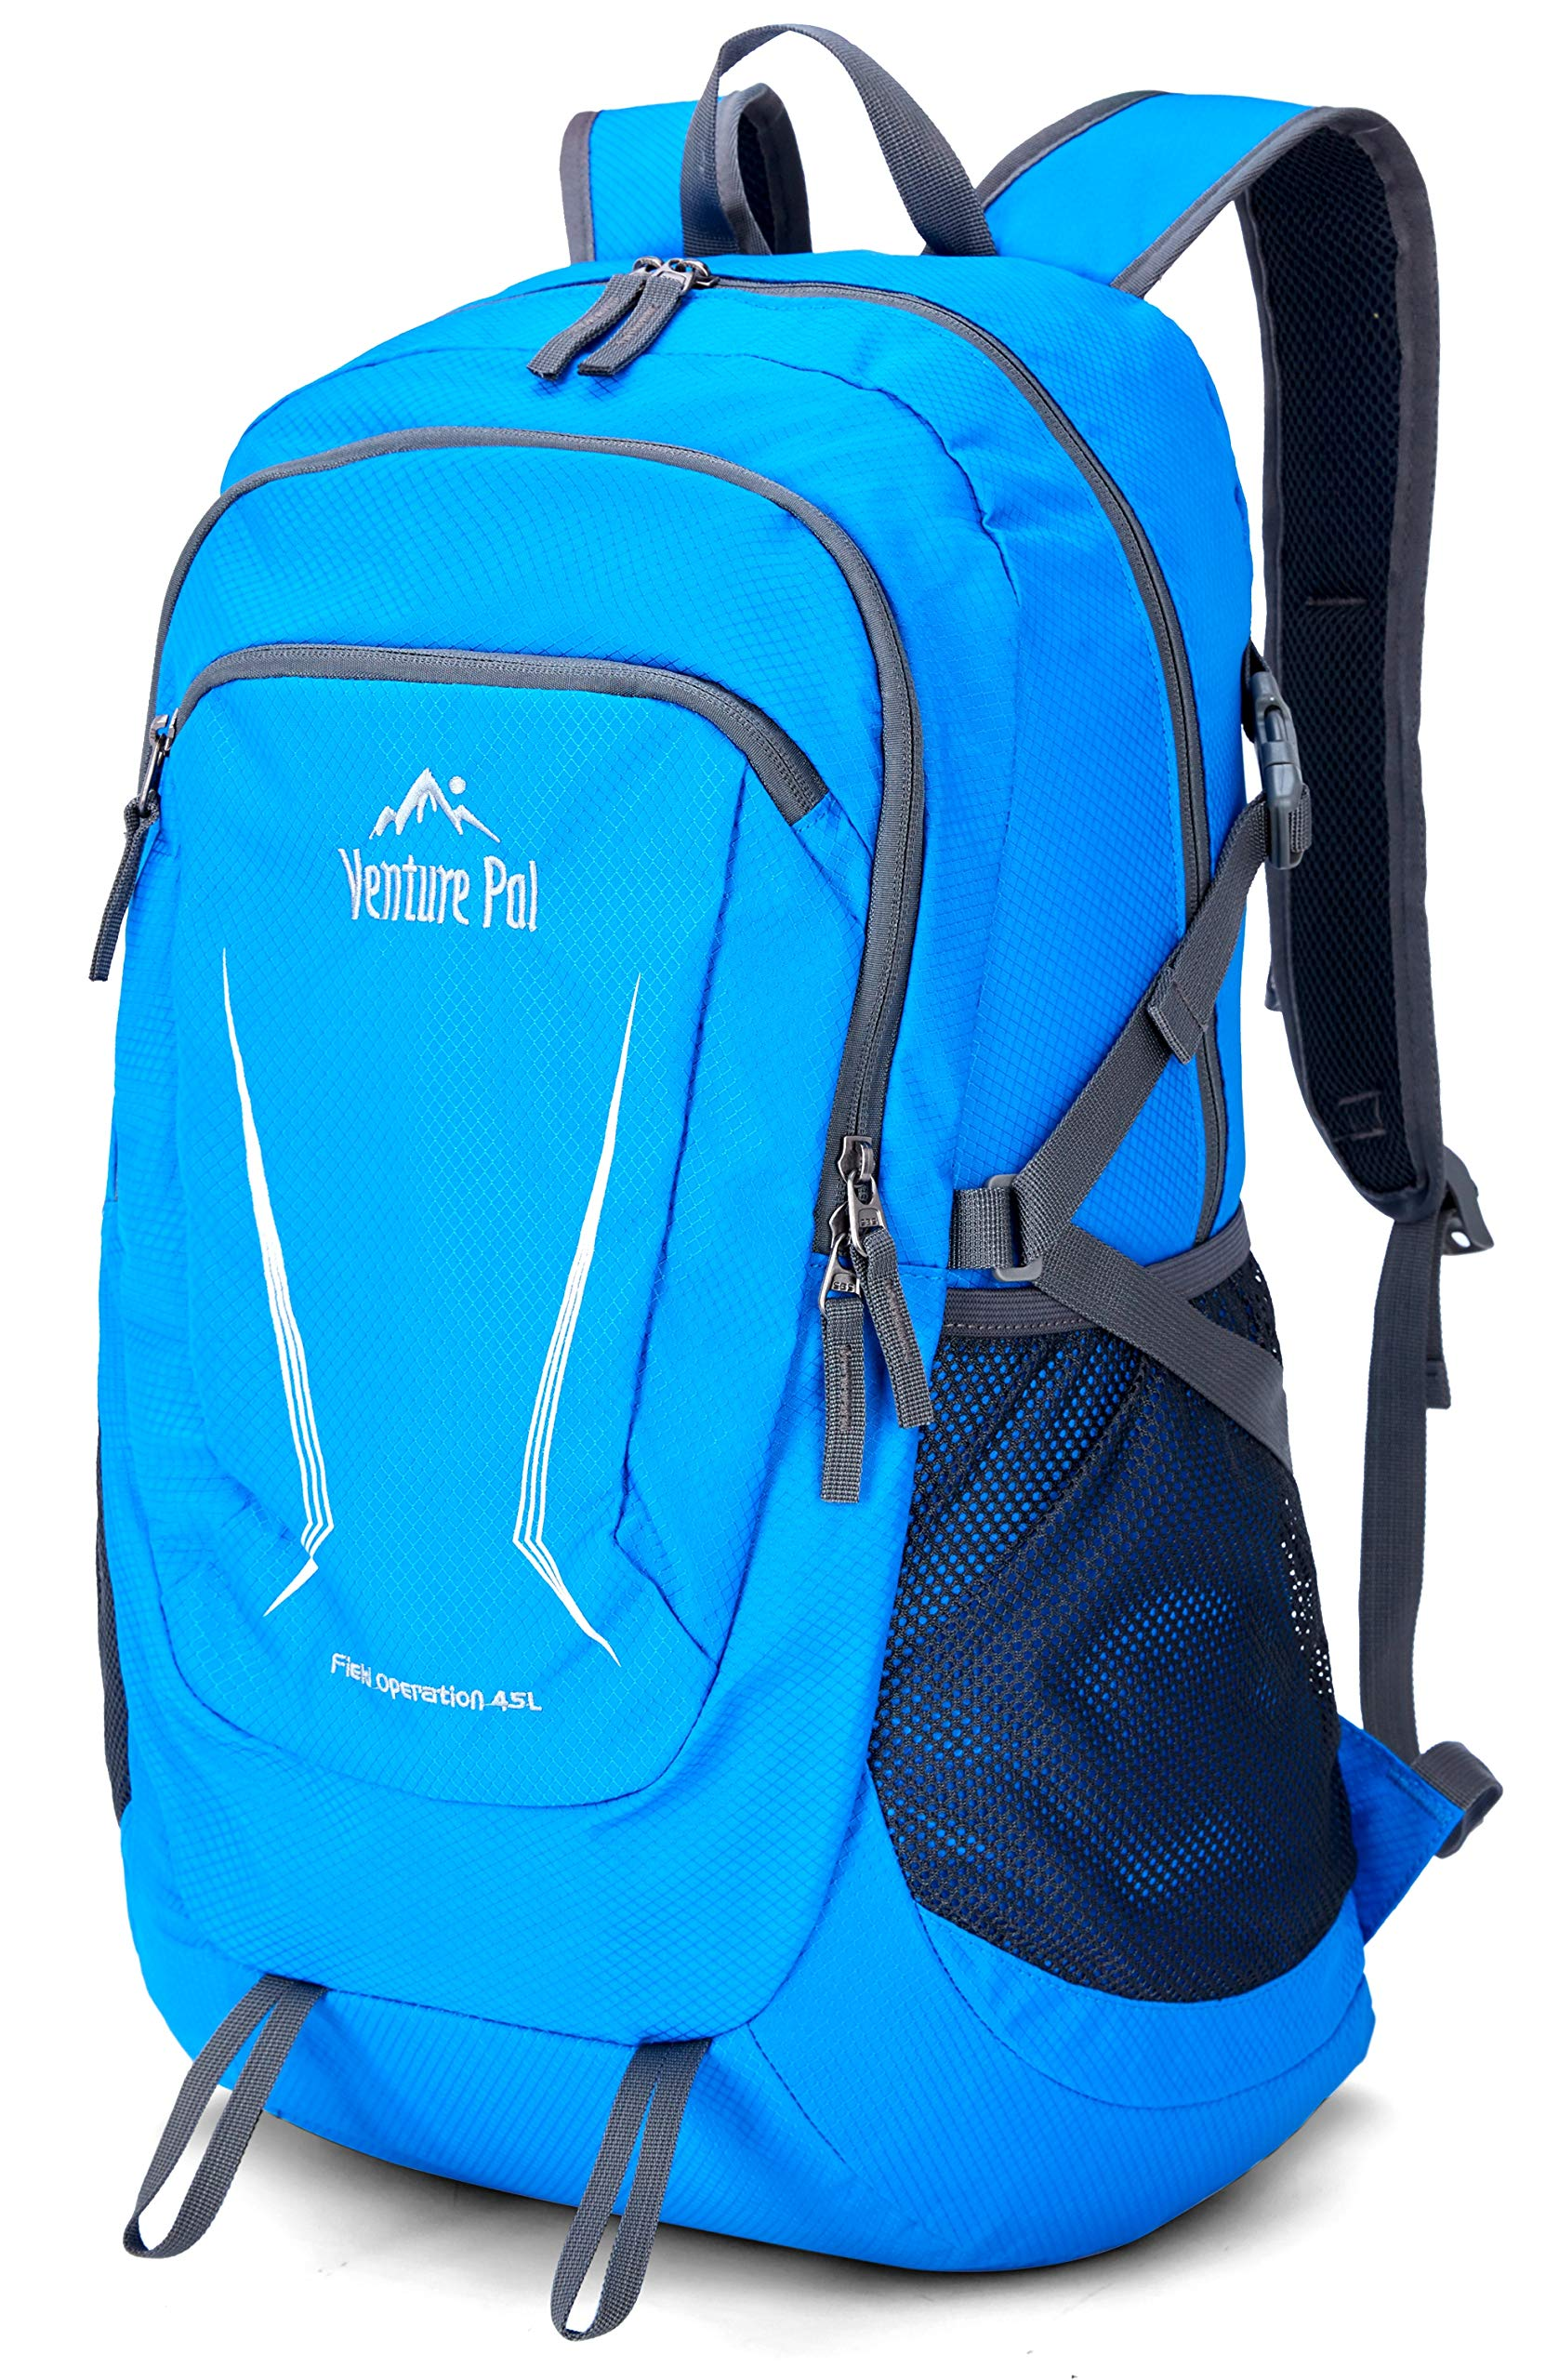 9c85cab2f2 Venture-Pal-Large-45L-Hiking-Backpack-Packable-Lightweight-Travel-Backpack- Daypack-for-Women-Men-Blue